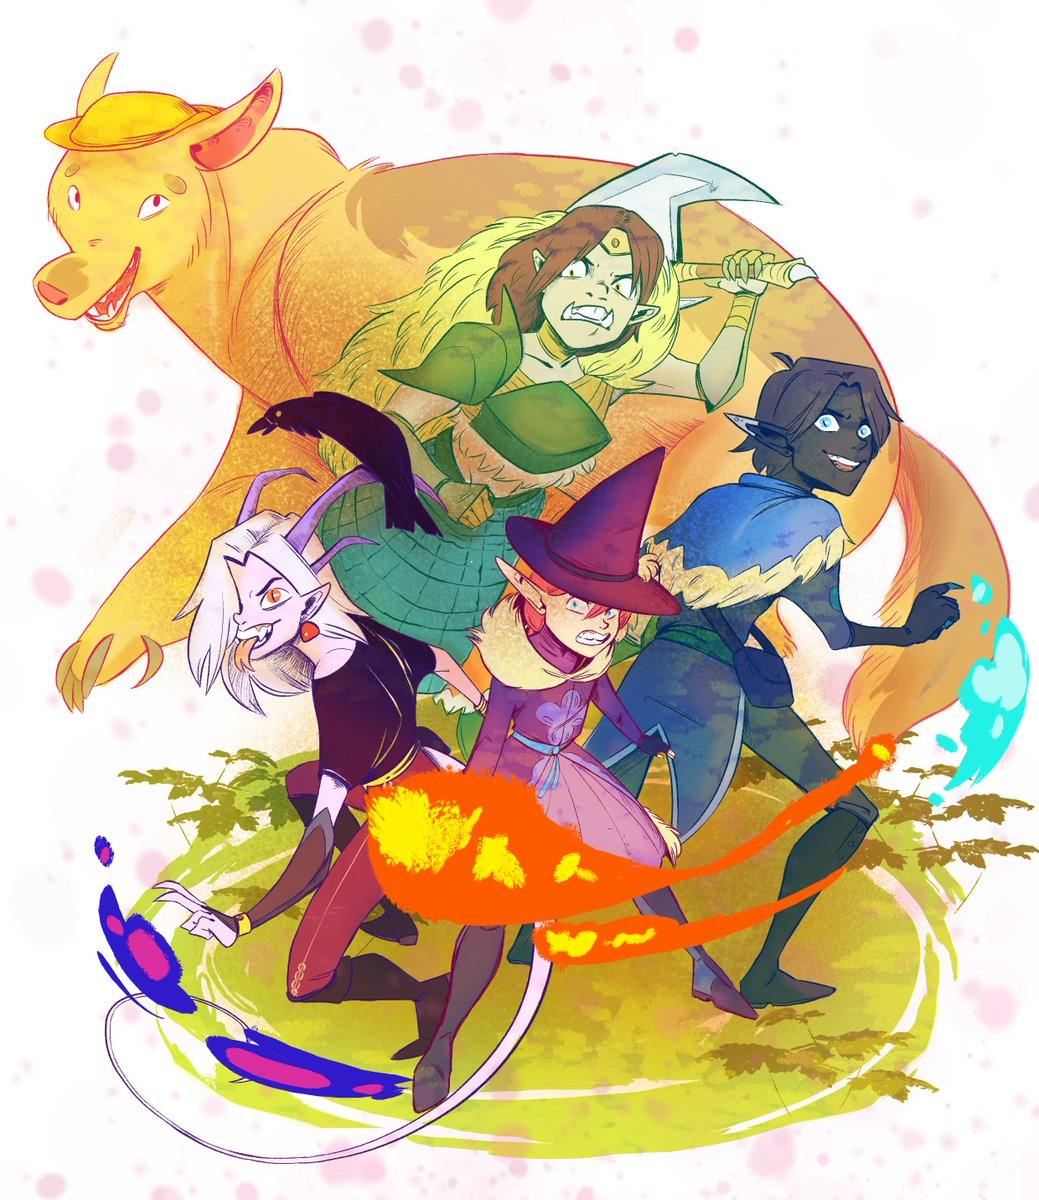 Four fantasy characters stand in front of a large yellow bear